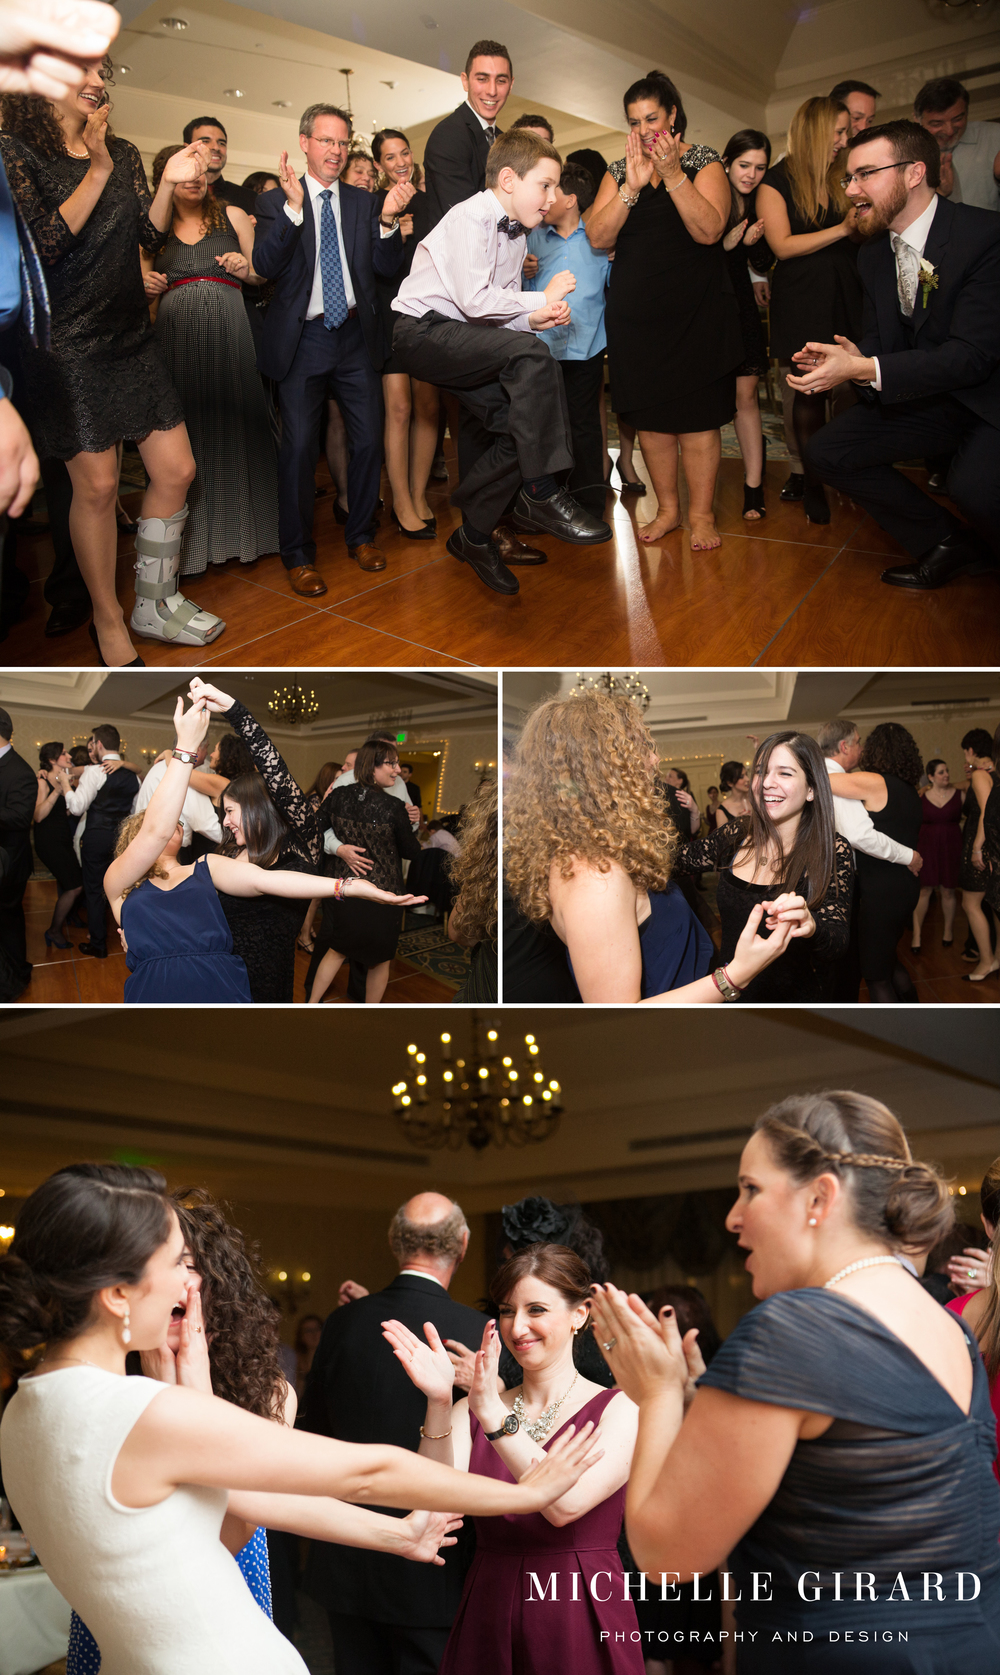 LordJefferyInnWedding_AmherstMa_MichelleGirardPhotography52.jpg